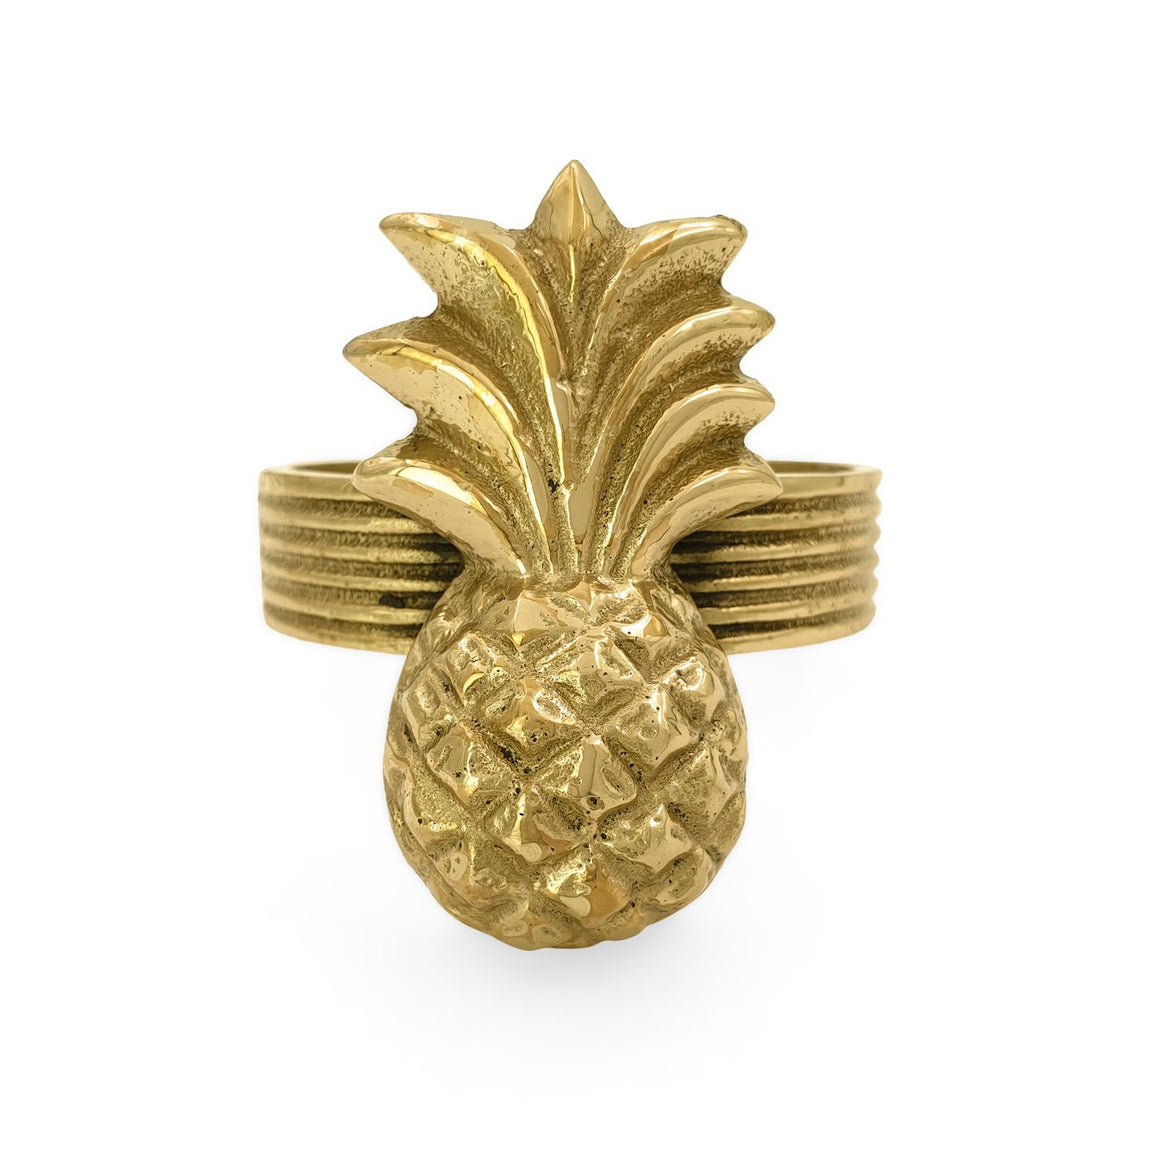 Handmade brass napkin ring pineapple front view